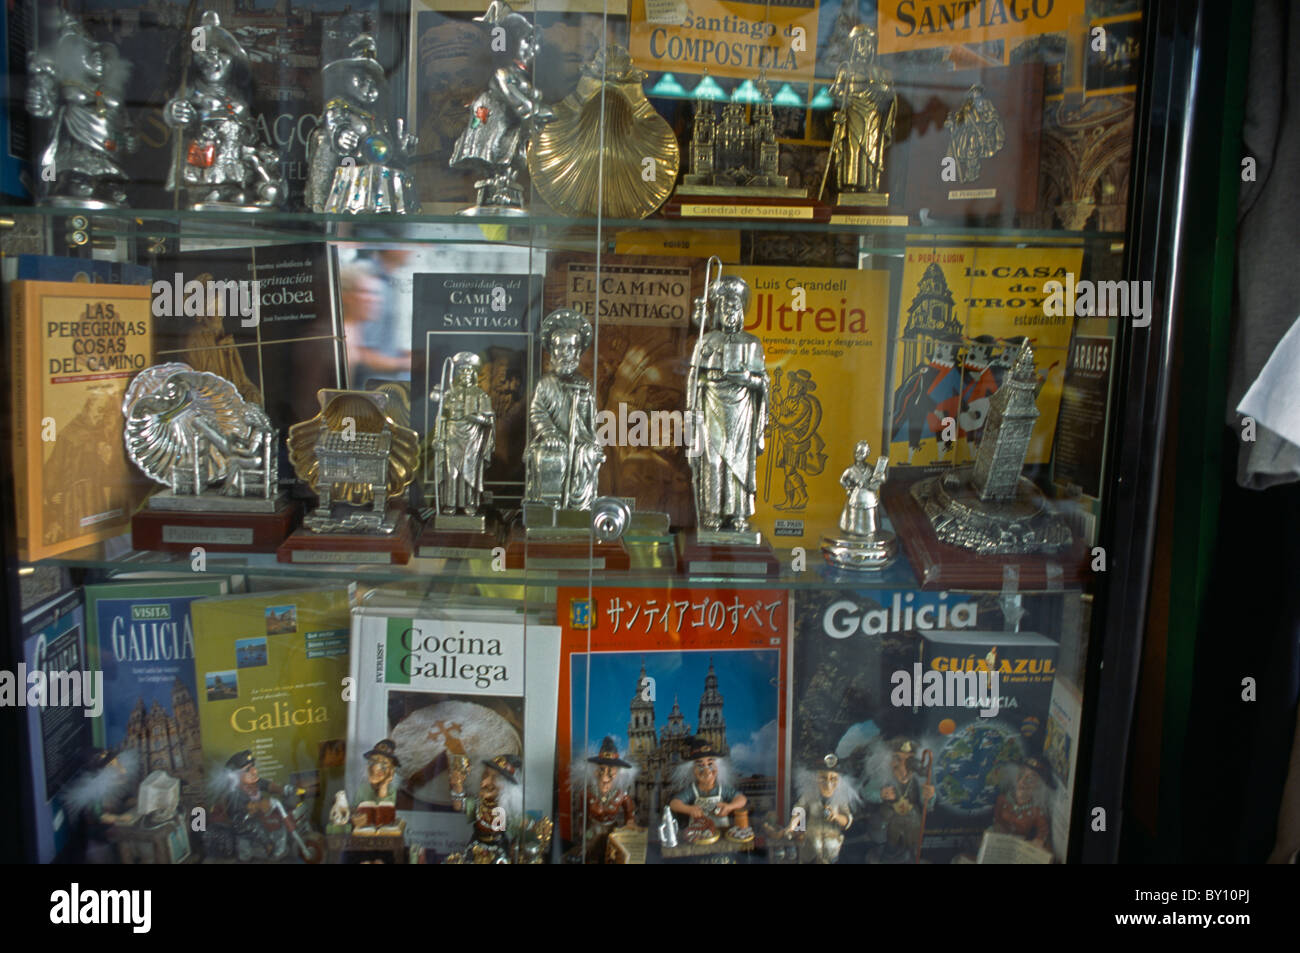 Galicia Spain Santiago De Compostela Figurines Of Saint James The Greater And Other Religious Artefacts In Shop - Stock Image